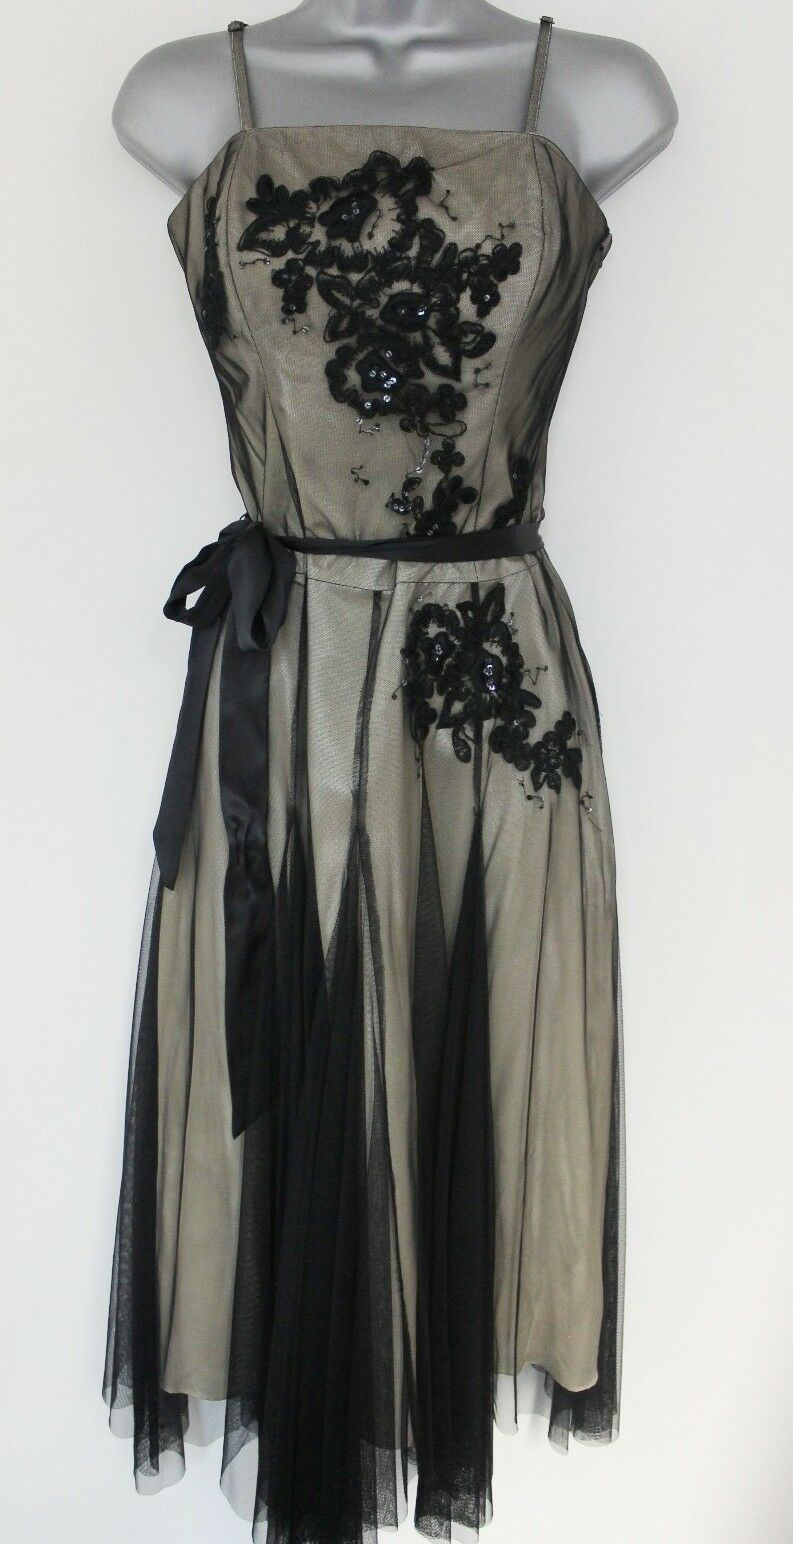 Stunning Monsoon Embellished Embroidered Net Evening Occasion Dress Size 10